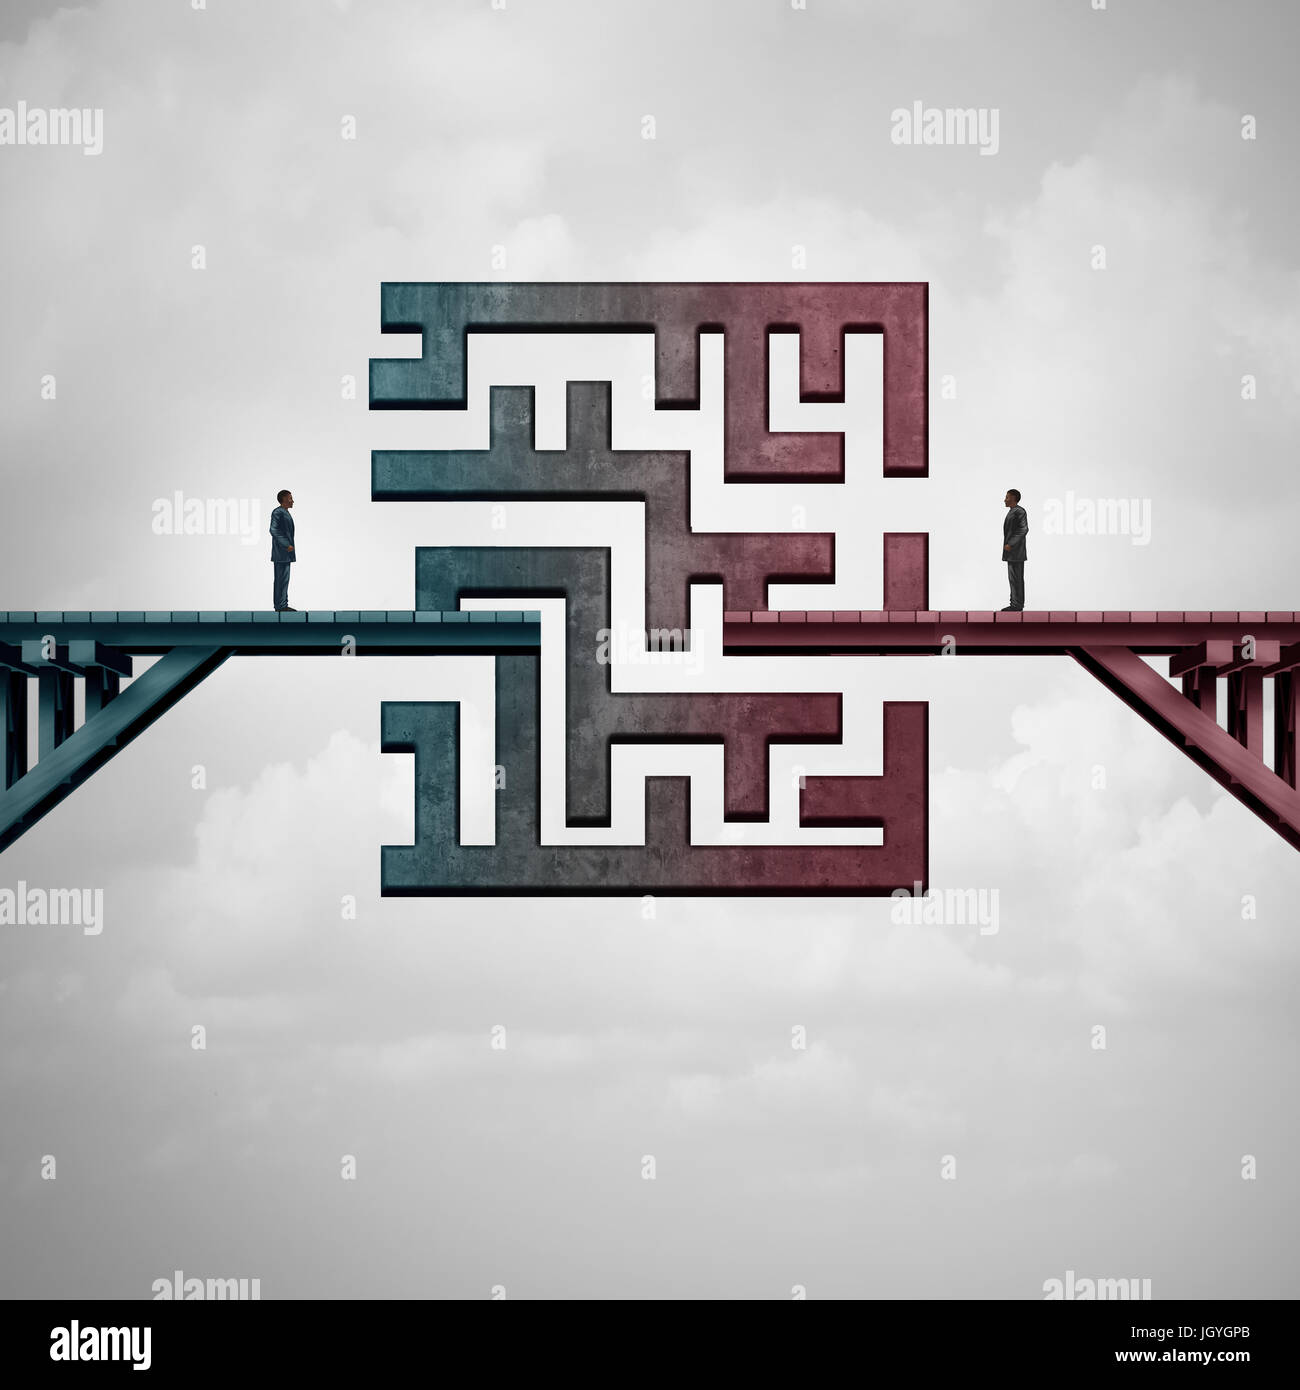 Business meeting challenge and communication solution concept as a bridge with a maze dividing two business people - Stock Image